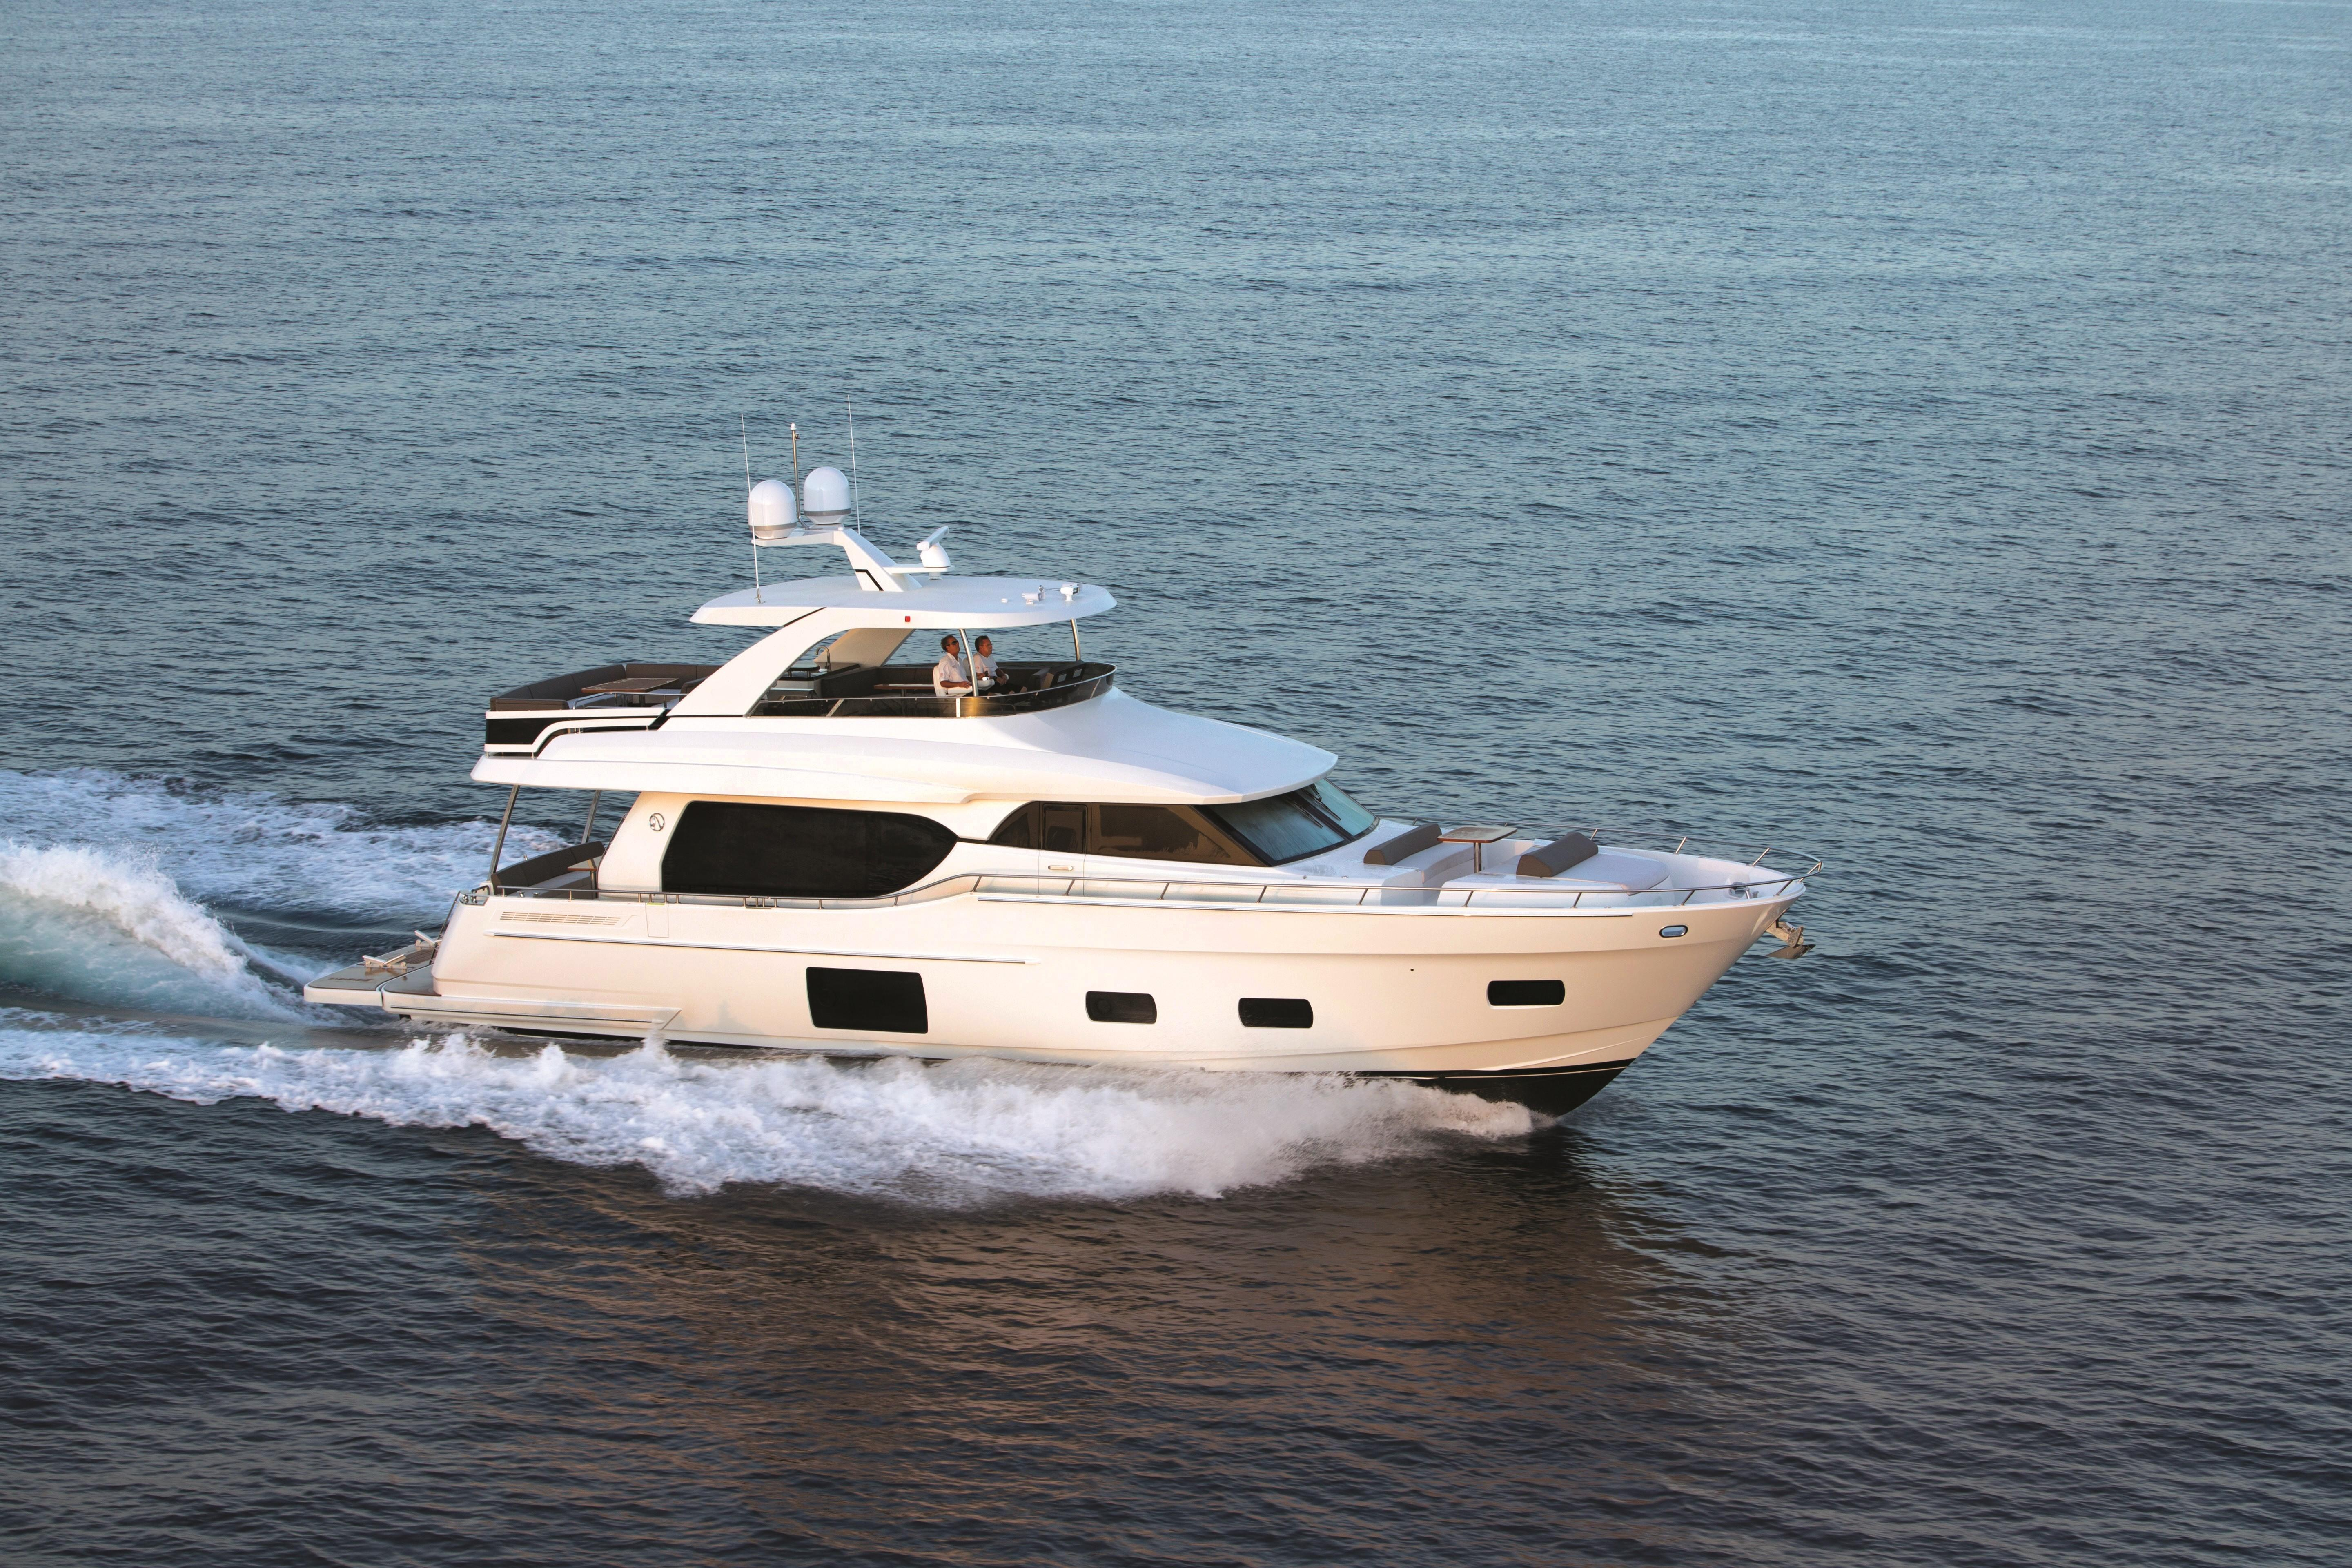 Work on luxury yachts: the flip side of the coin 49